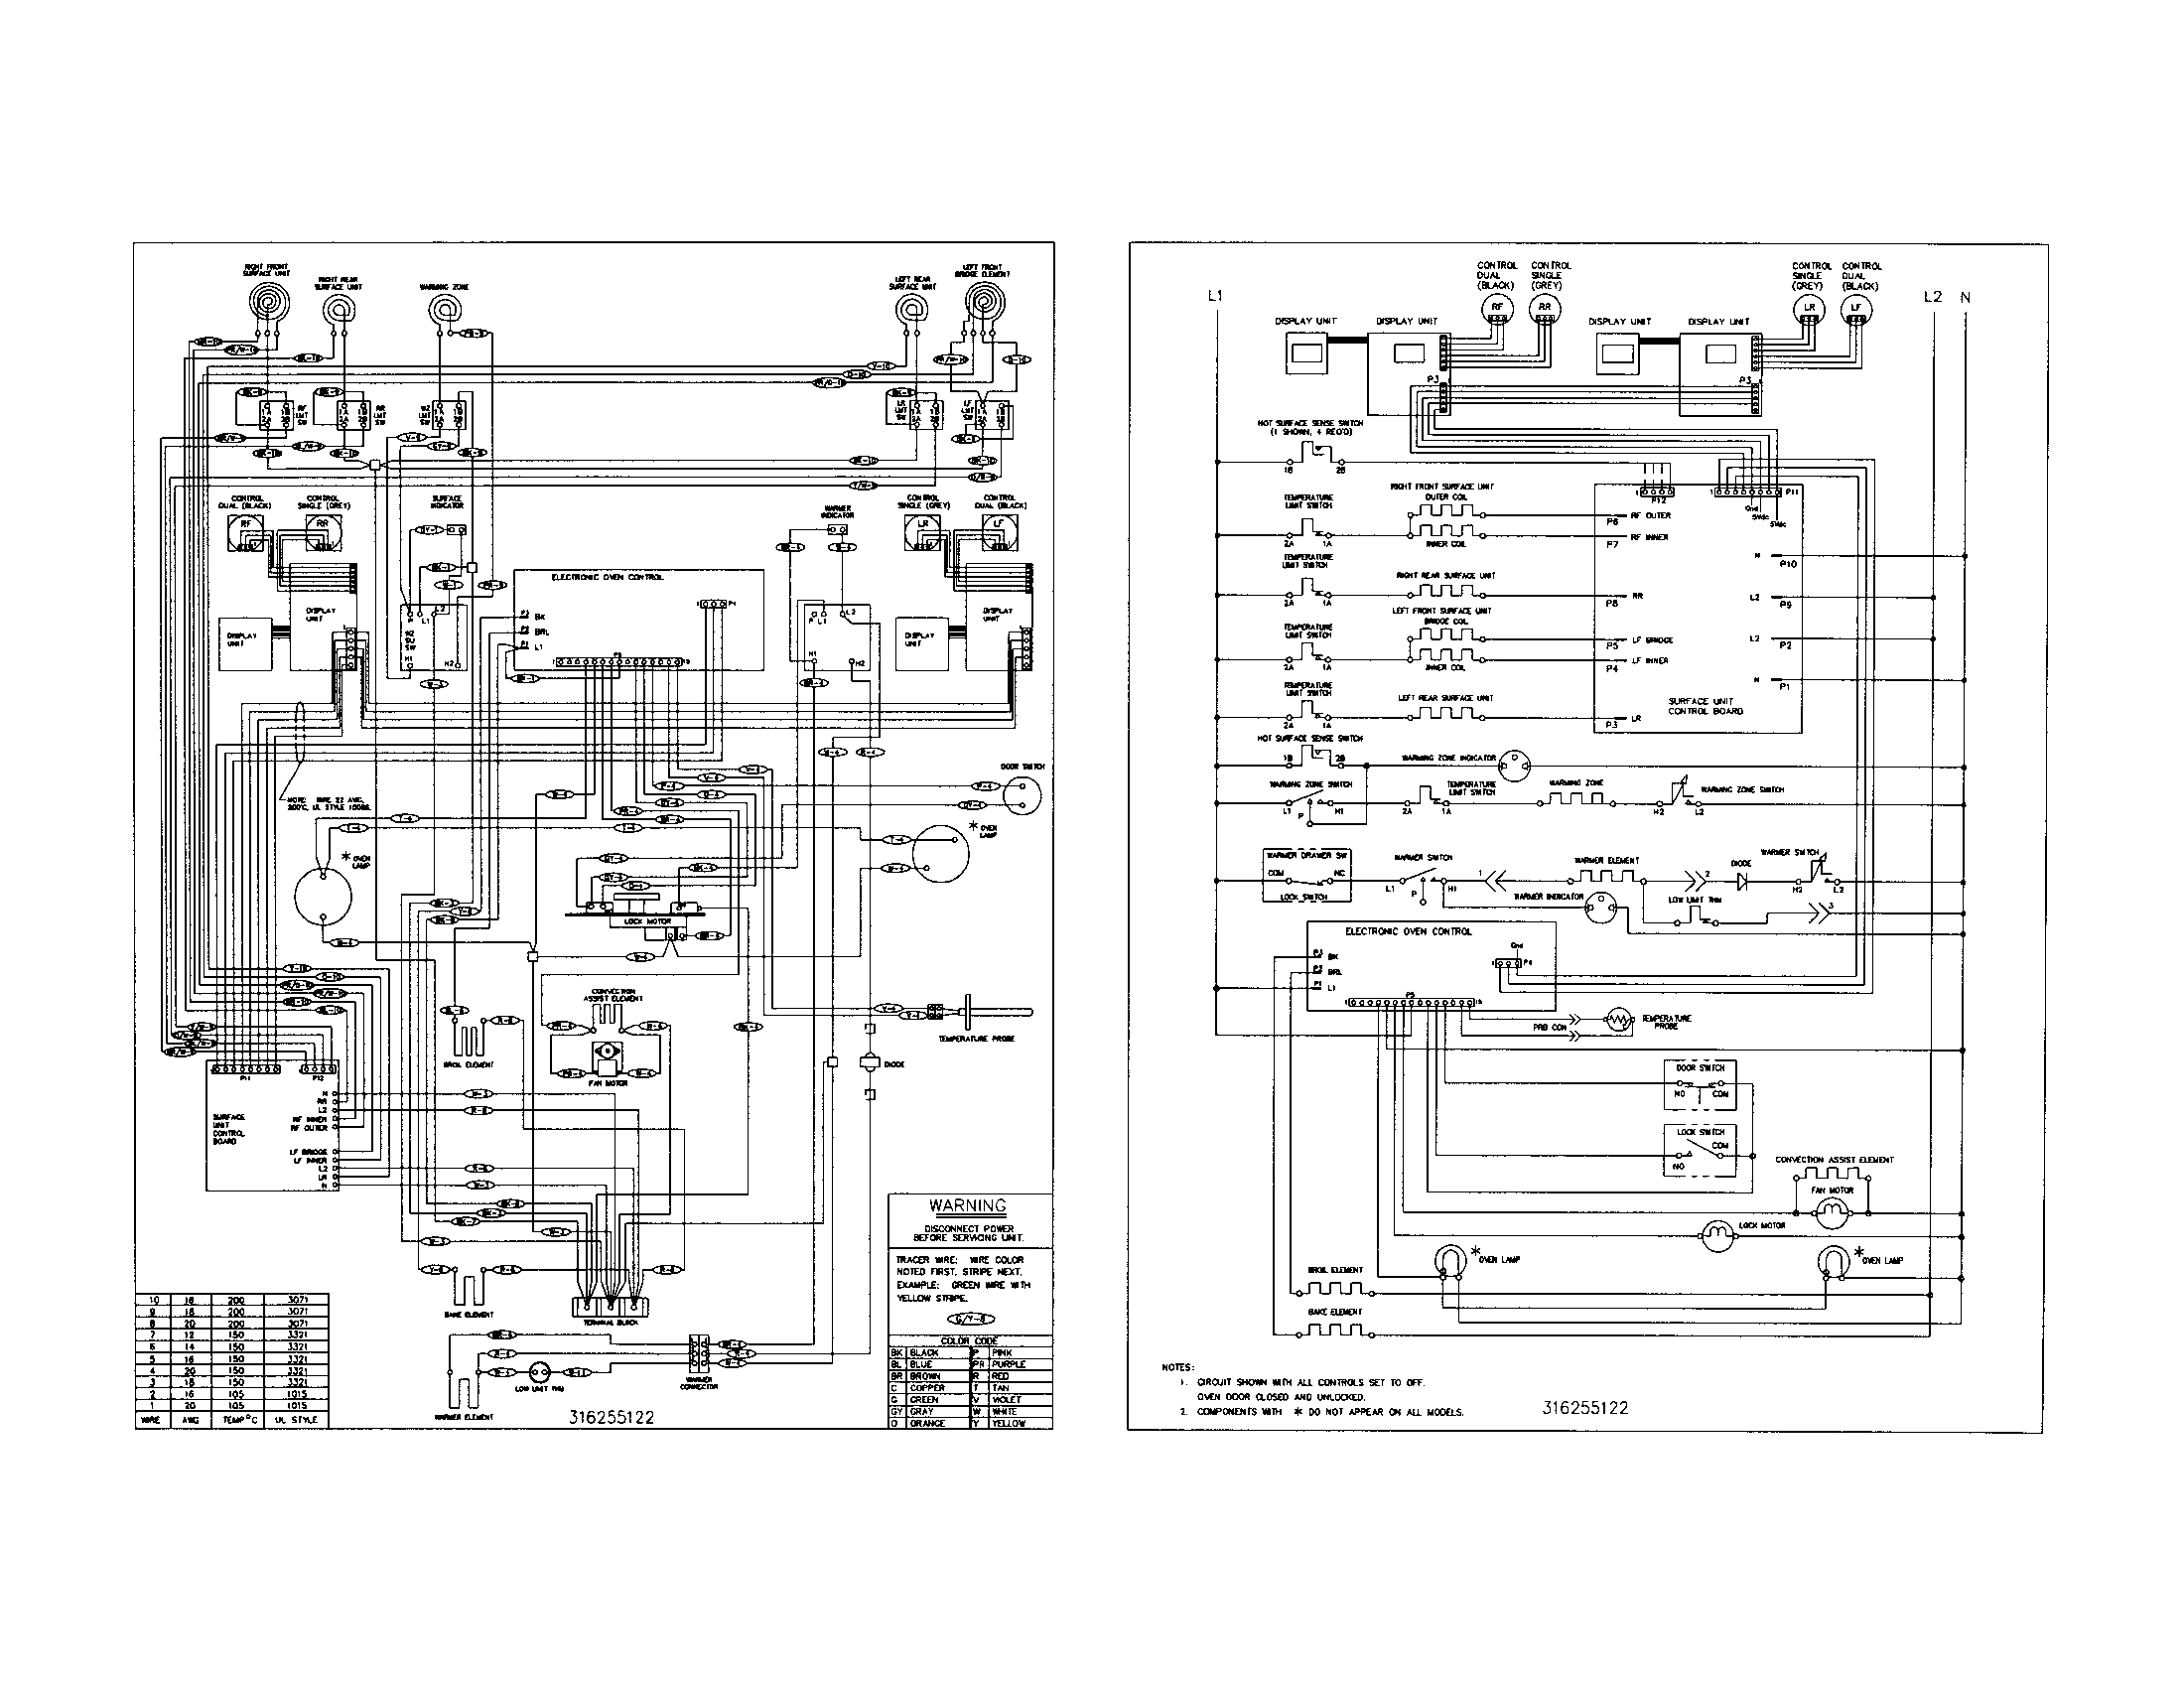 Kitchenaid Dishwasher Electrical Wiring Diagram